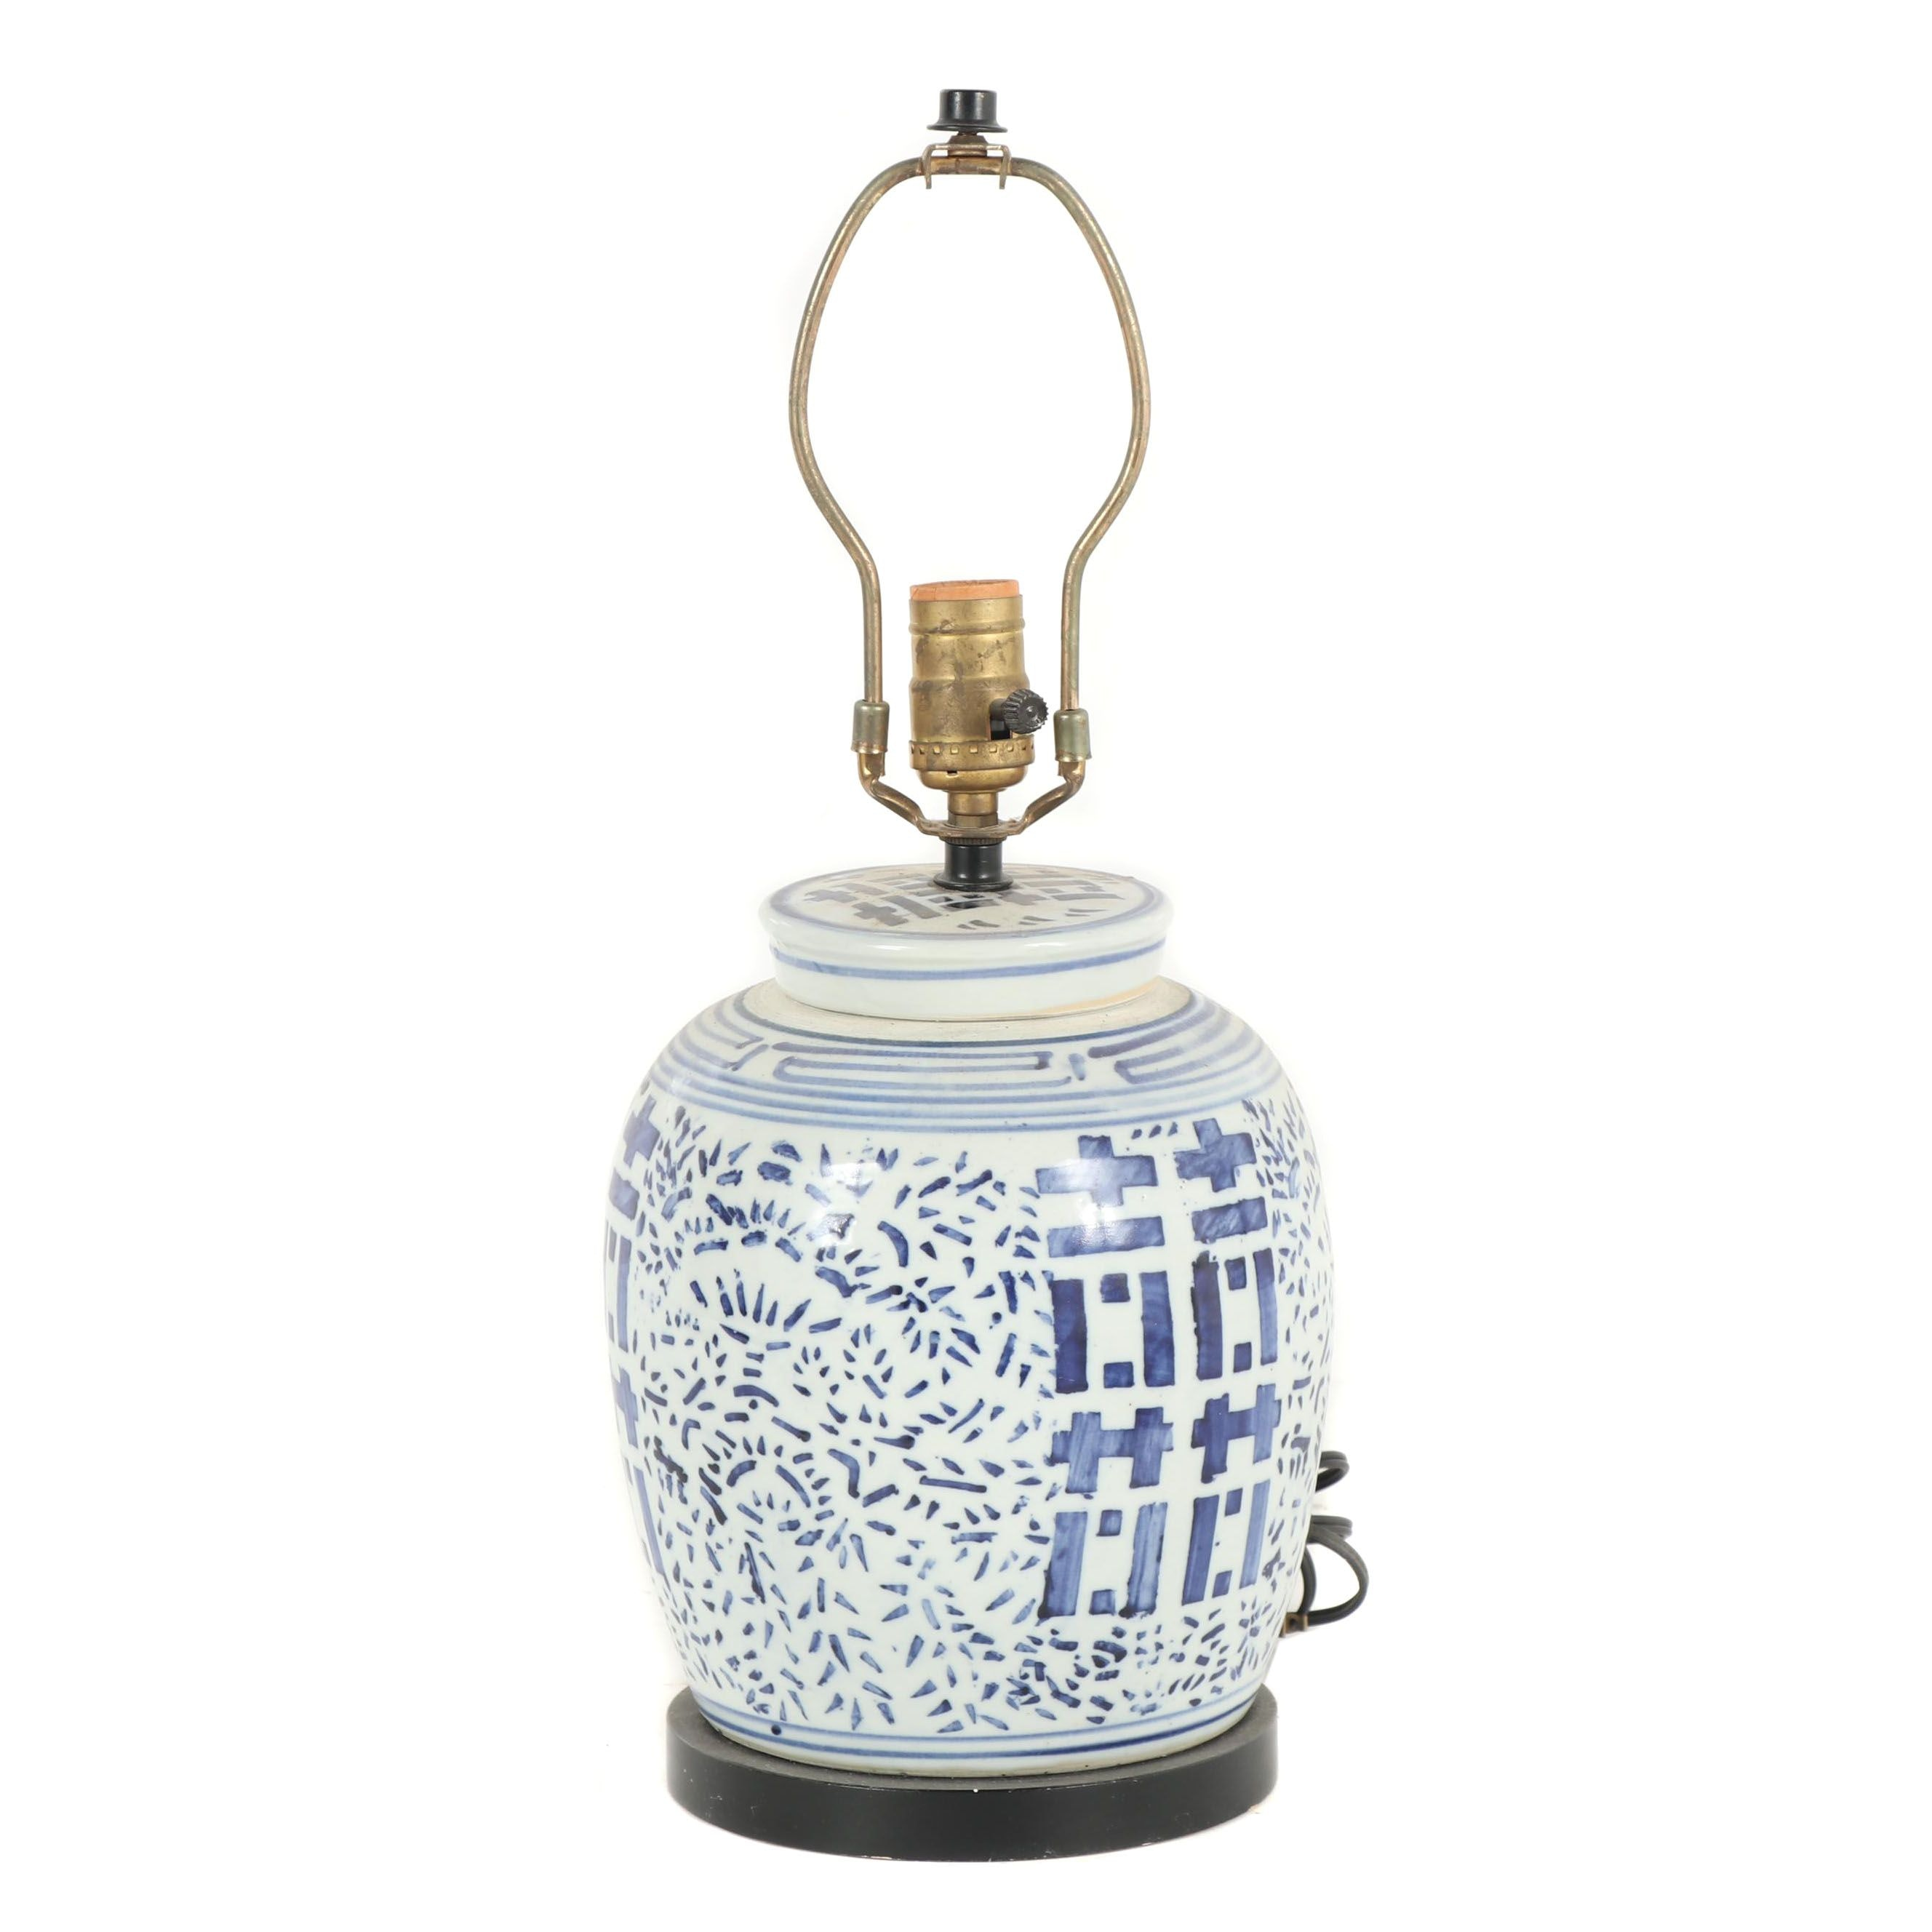 Chinese Blue and White Porcelain Ginger Jar Table Lamp